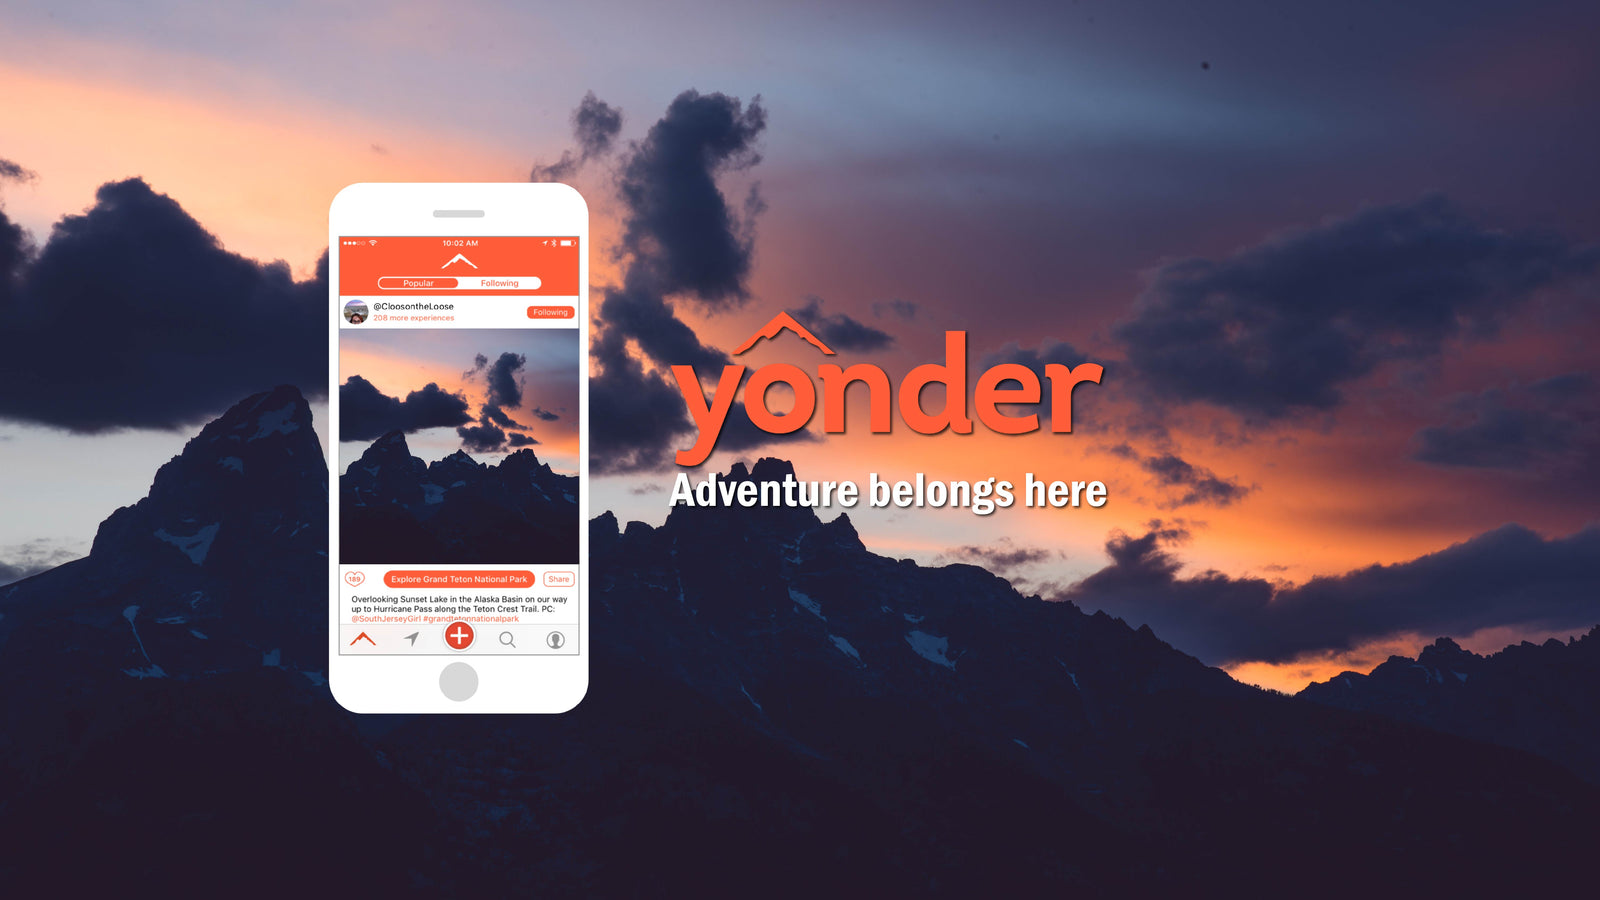 Yonder, a site built for adventurers! Hiking, skiing, climbing, camping, overland